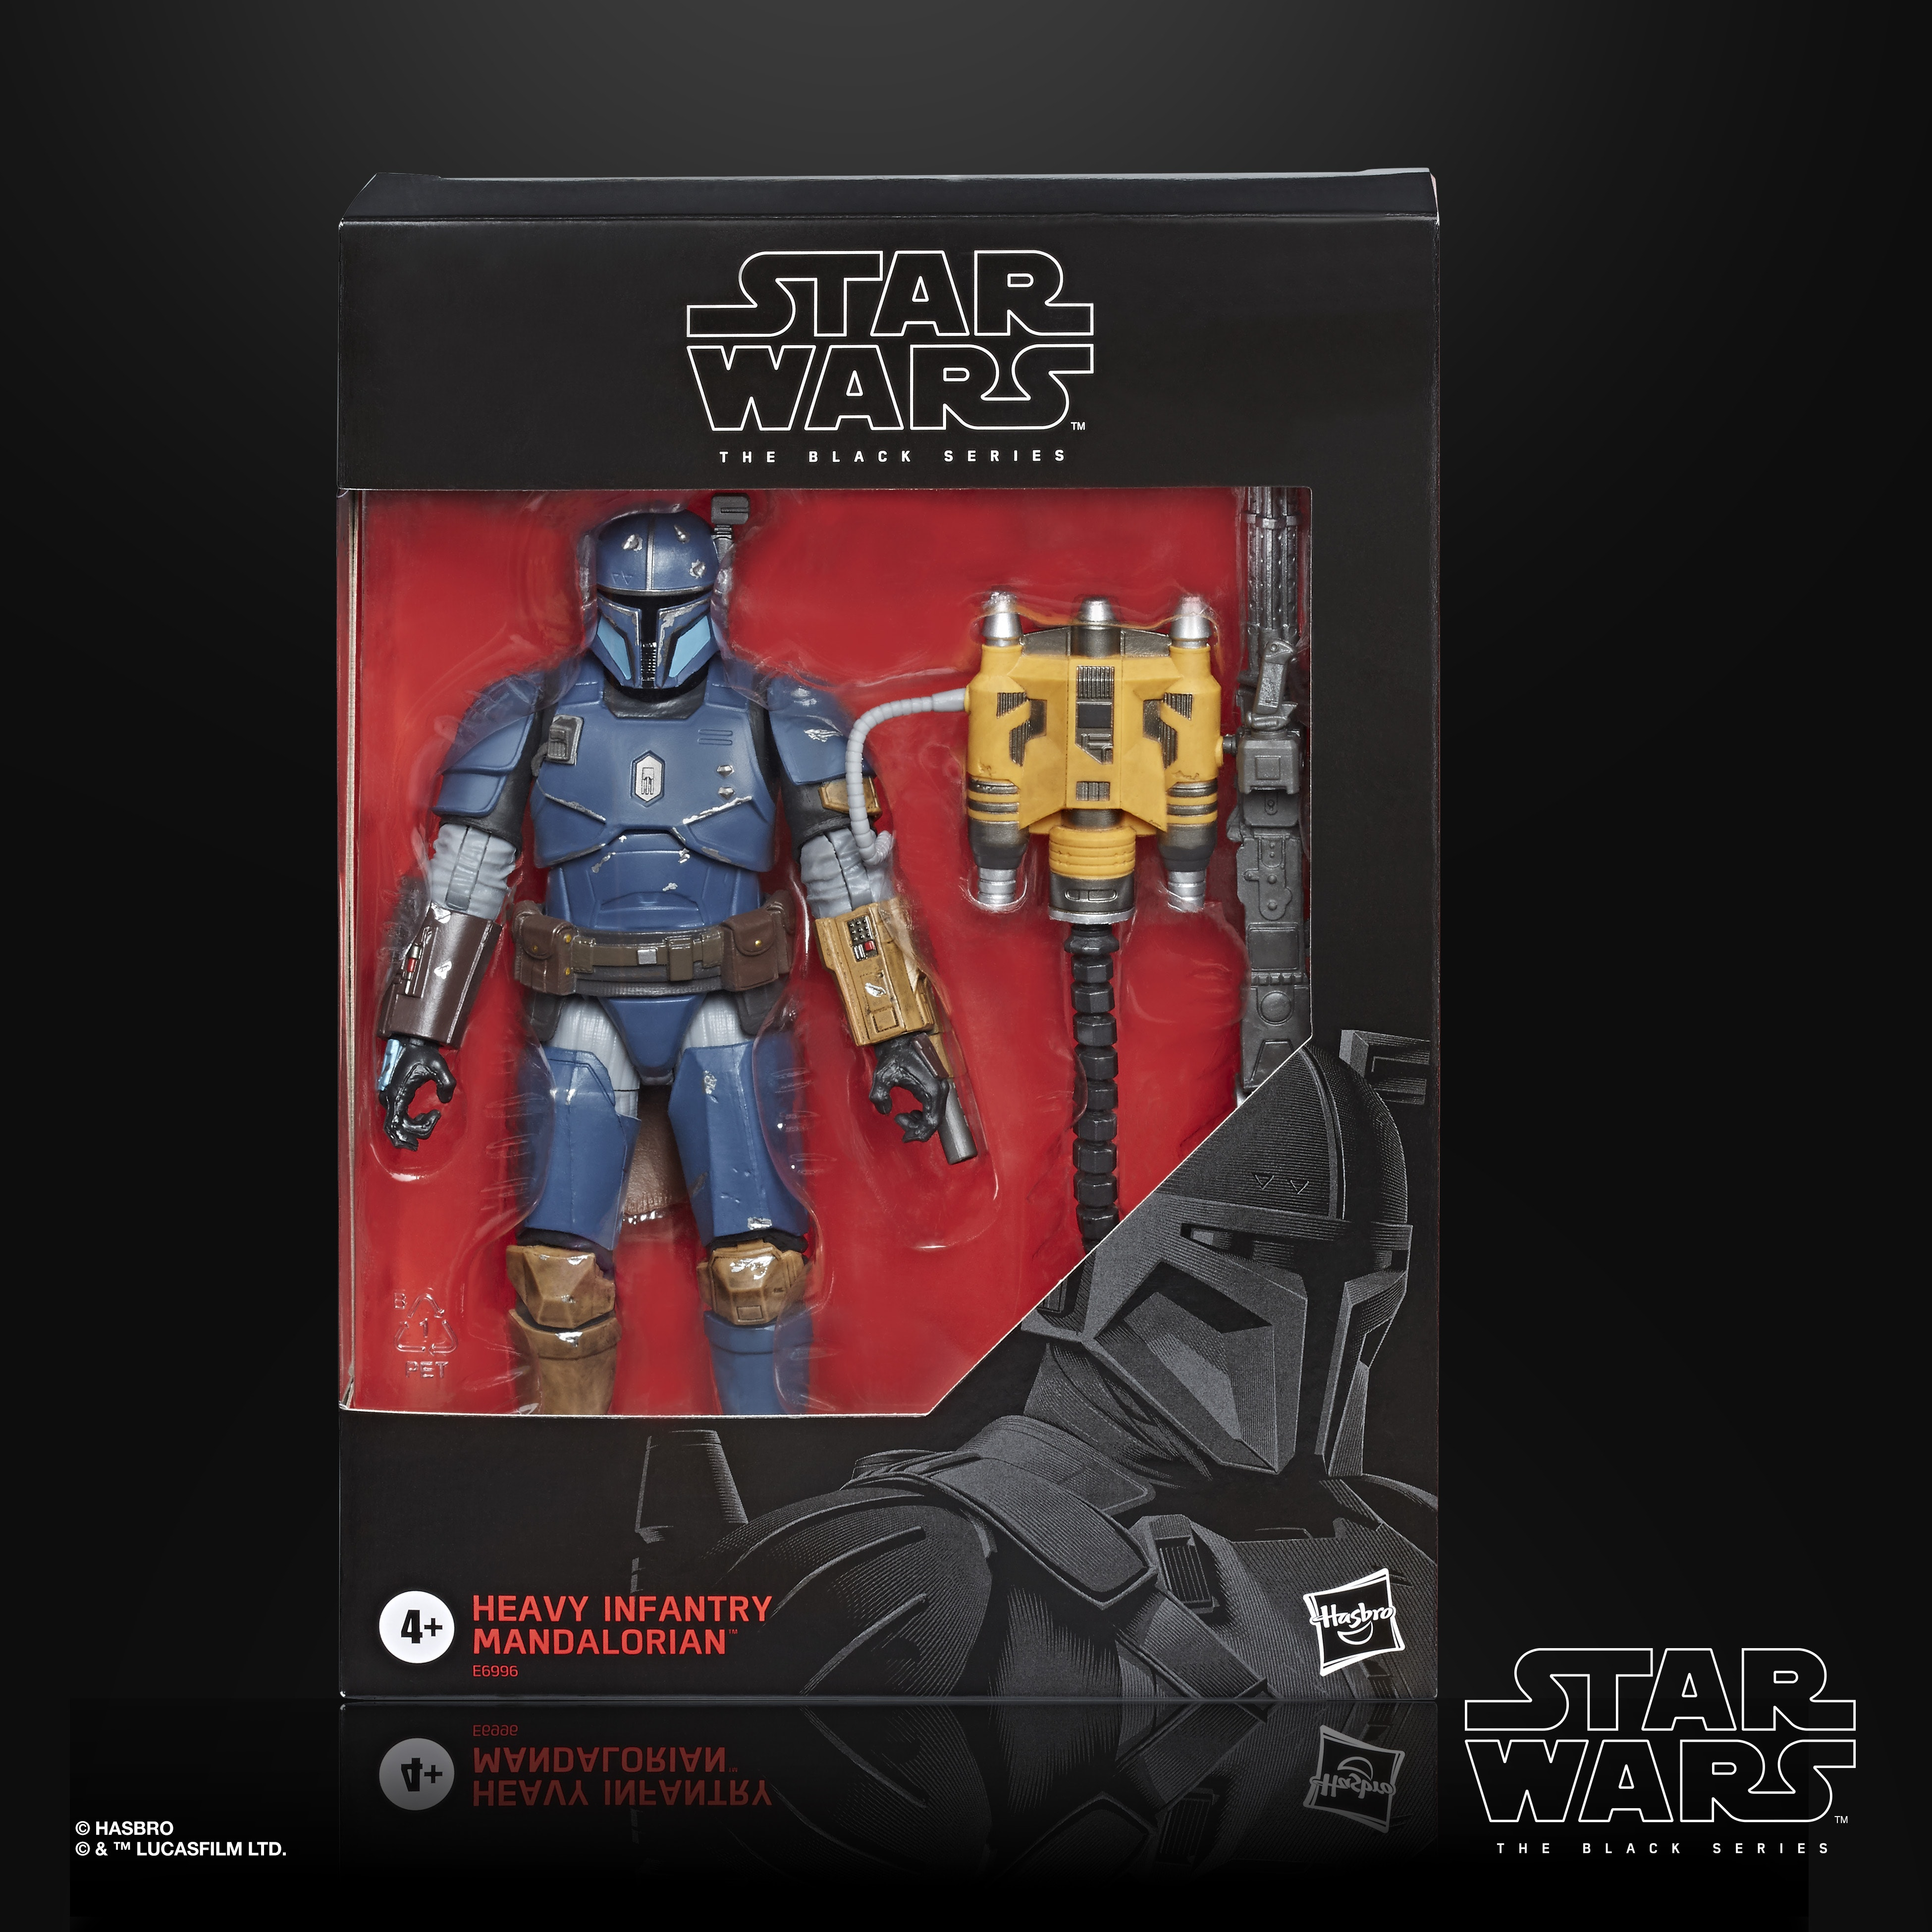 Star Wars The Black Series Six Inch Heavy Infantry Mandalorian Action Figure